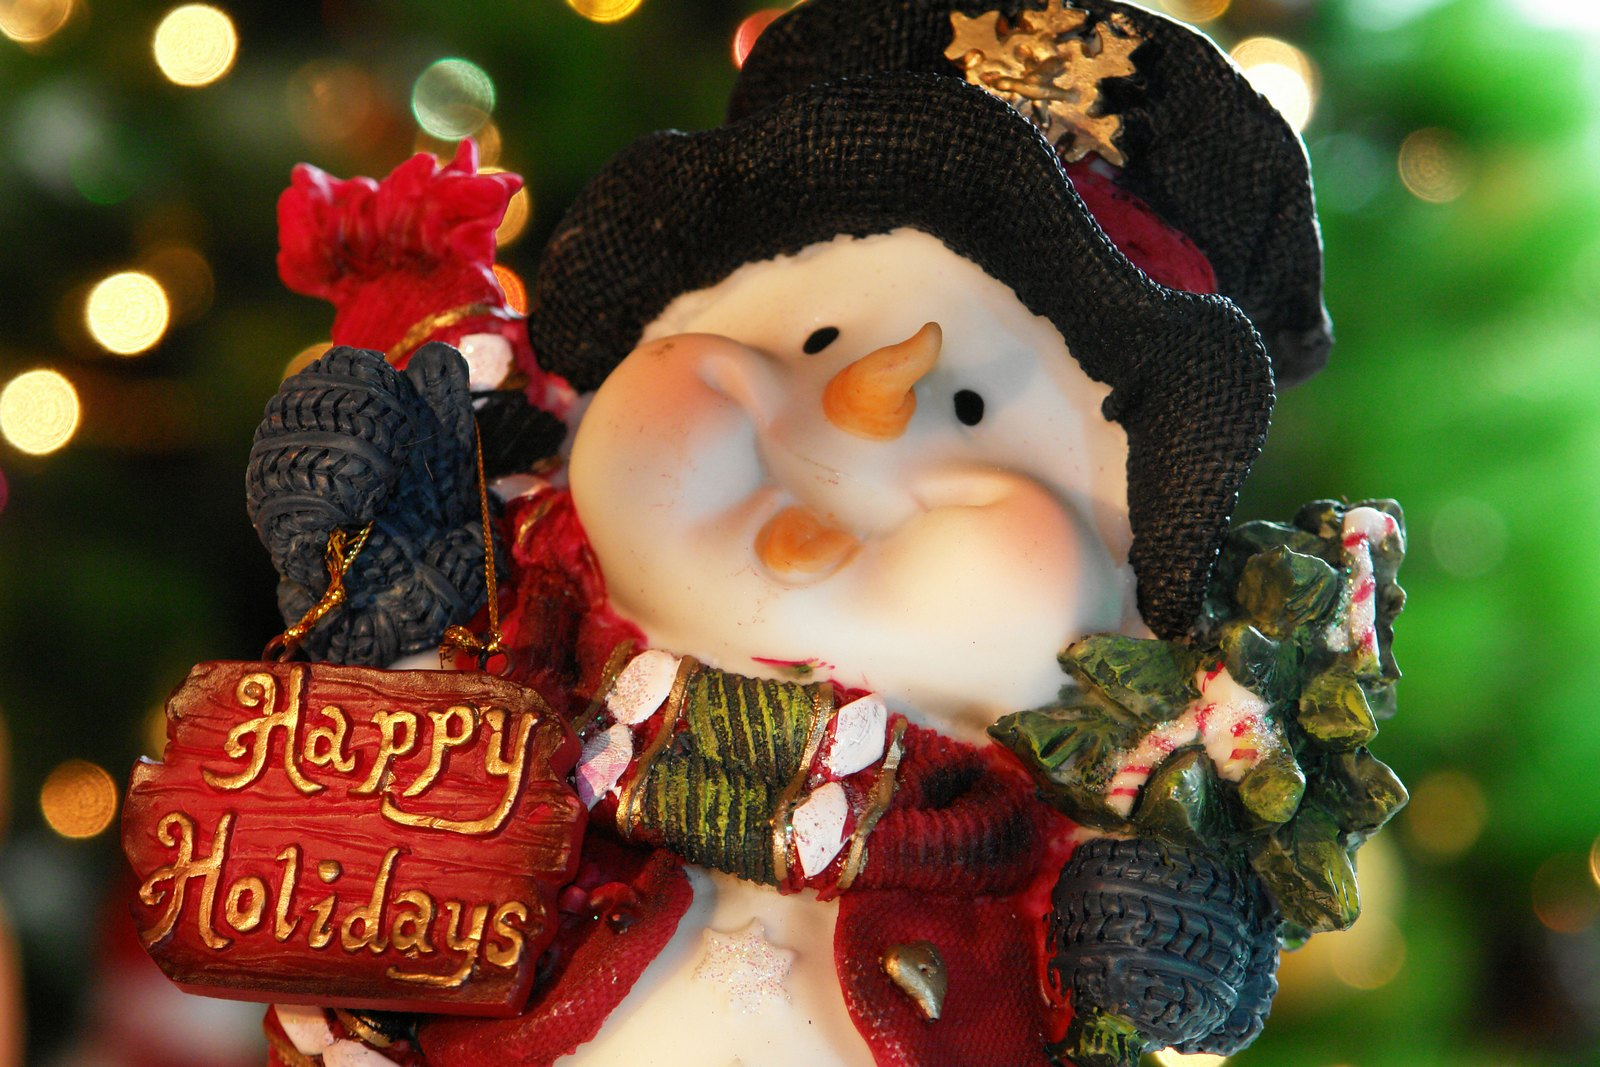 Happy Holidays 2014 Wallpapers Happy 2015 - HD Pictures 2014 ...